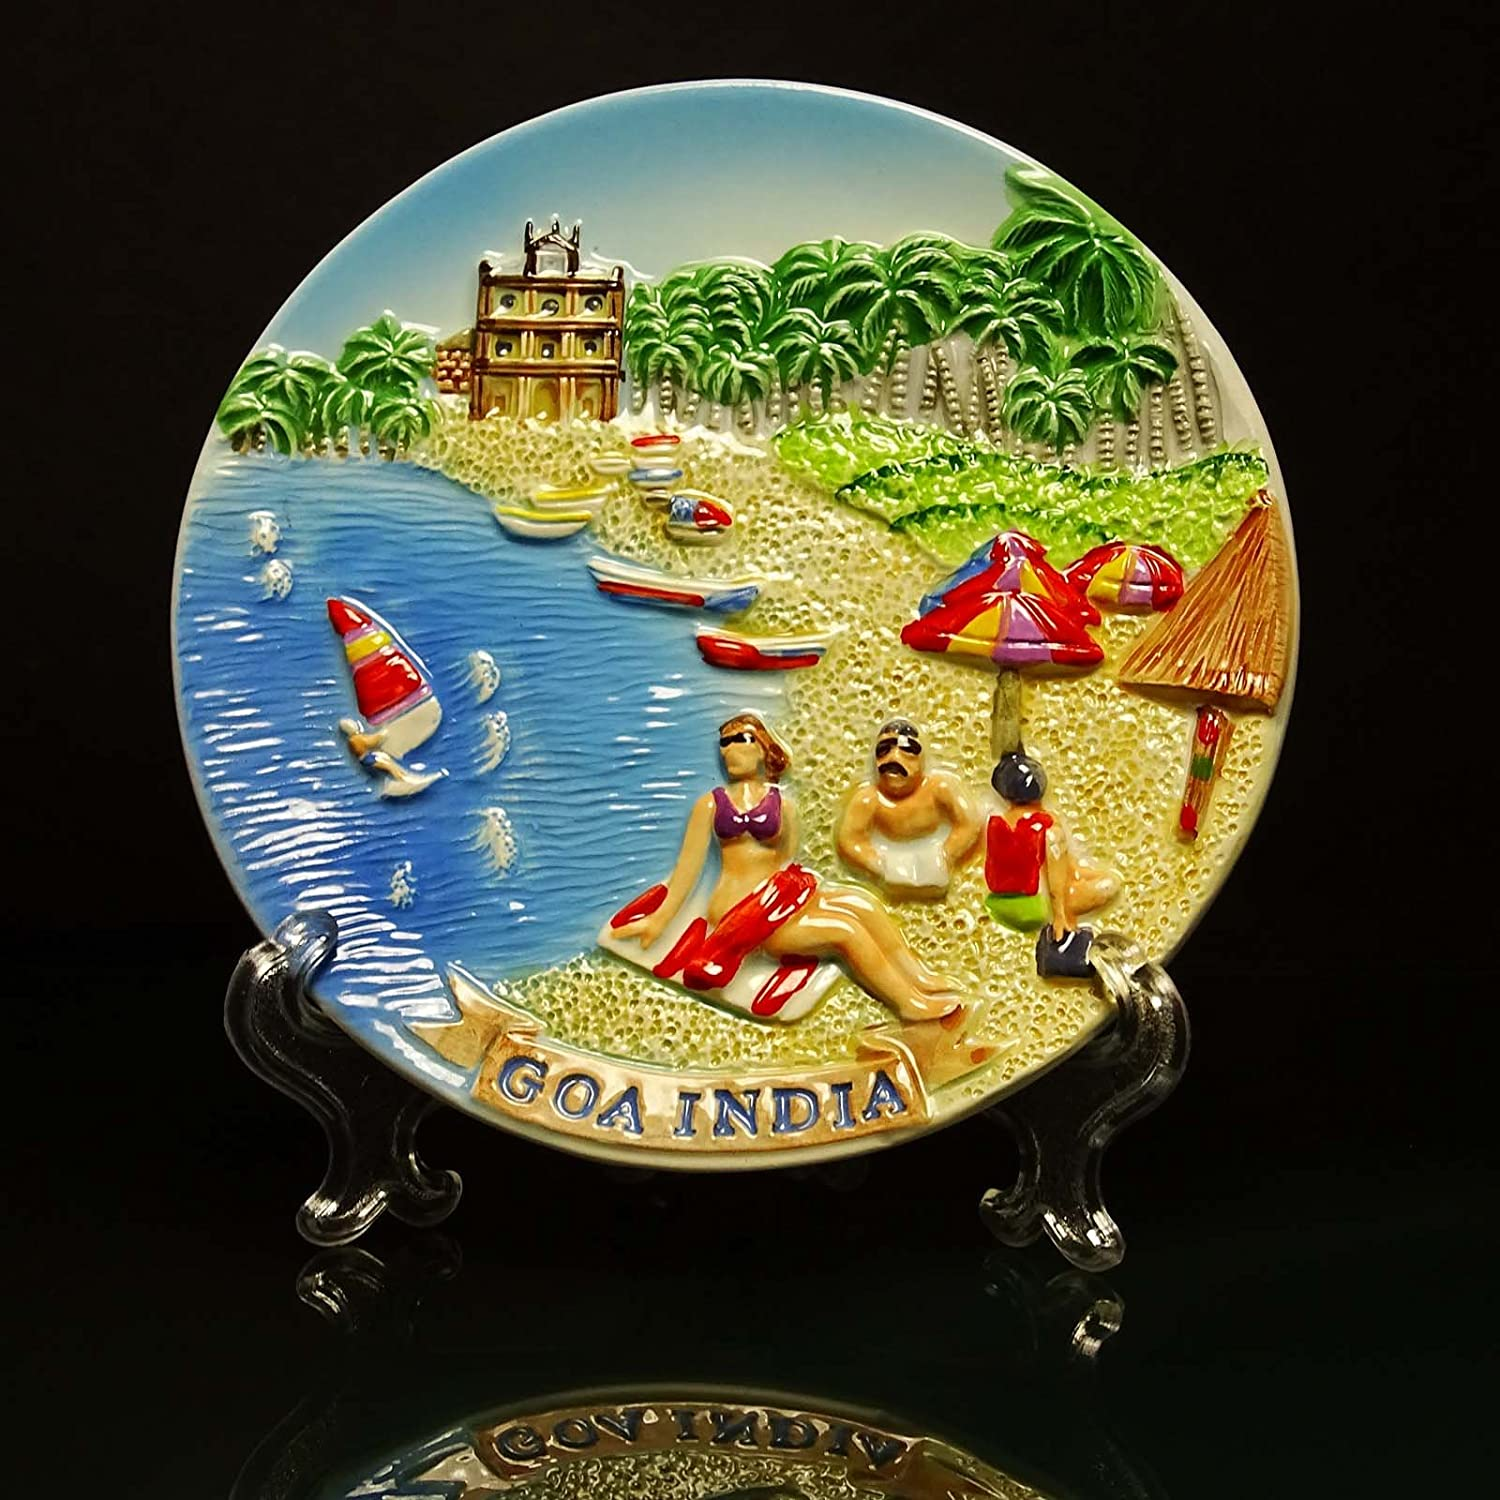 Amazon.com: Decorative Plate Engraved Goa Beach Wall Hanging Indian ...